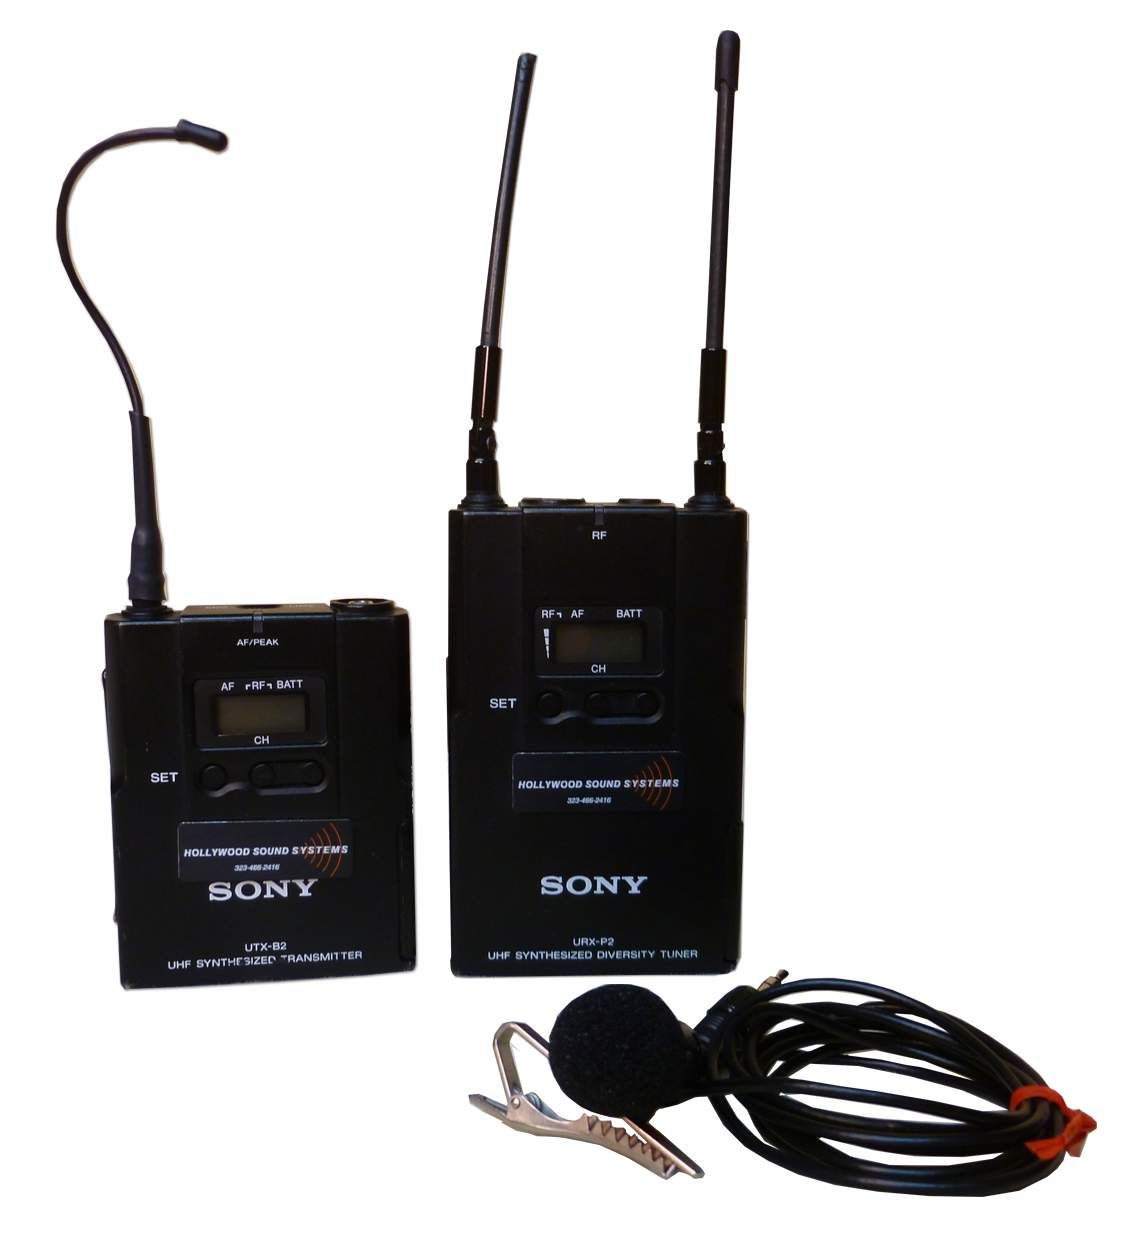 The Sony UWP-V1 Wireless Lavalier Microphone Package is available at Hollywood Sound Systems.